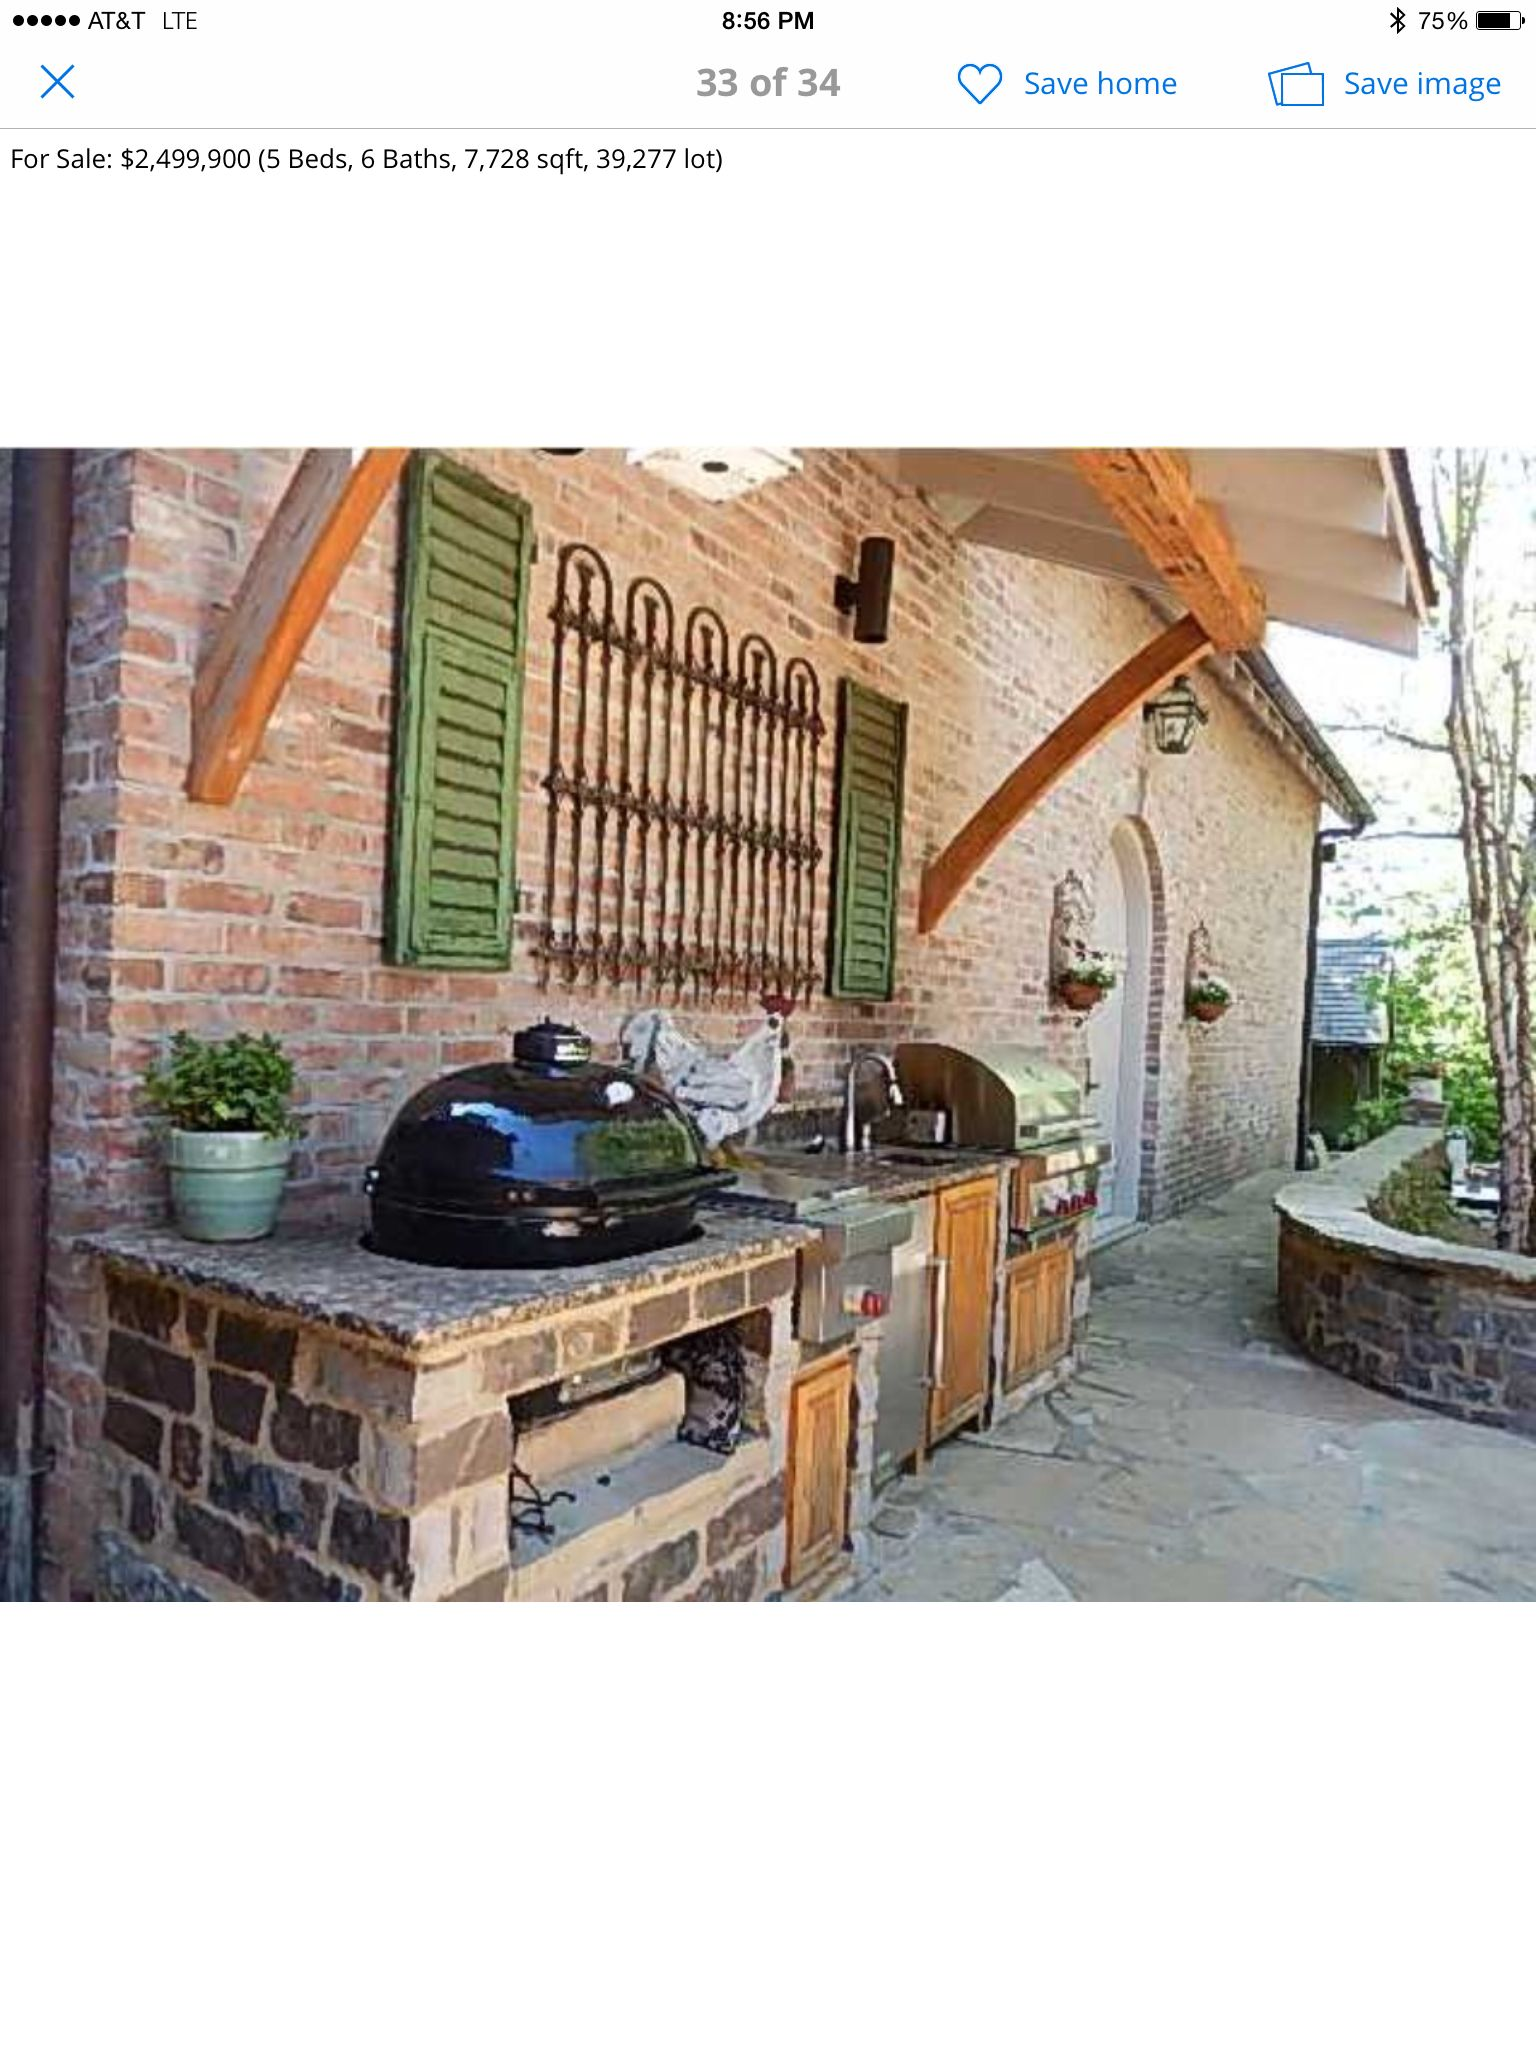 Easy outdoor grill station | Patio, Outdoor grill, Outdoor ... on Patio Grill Station id=85743